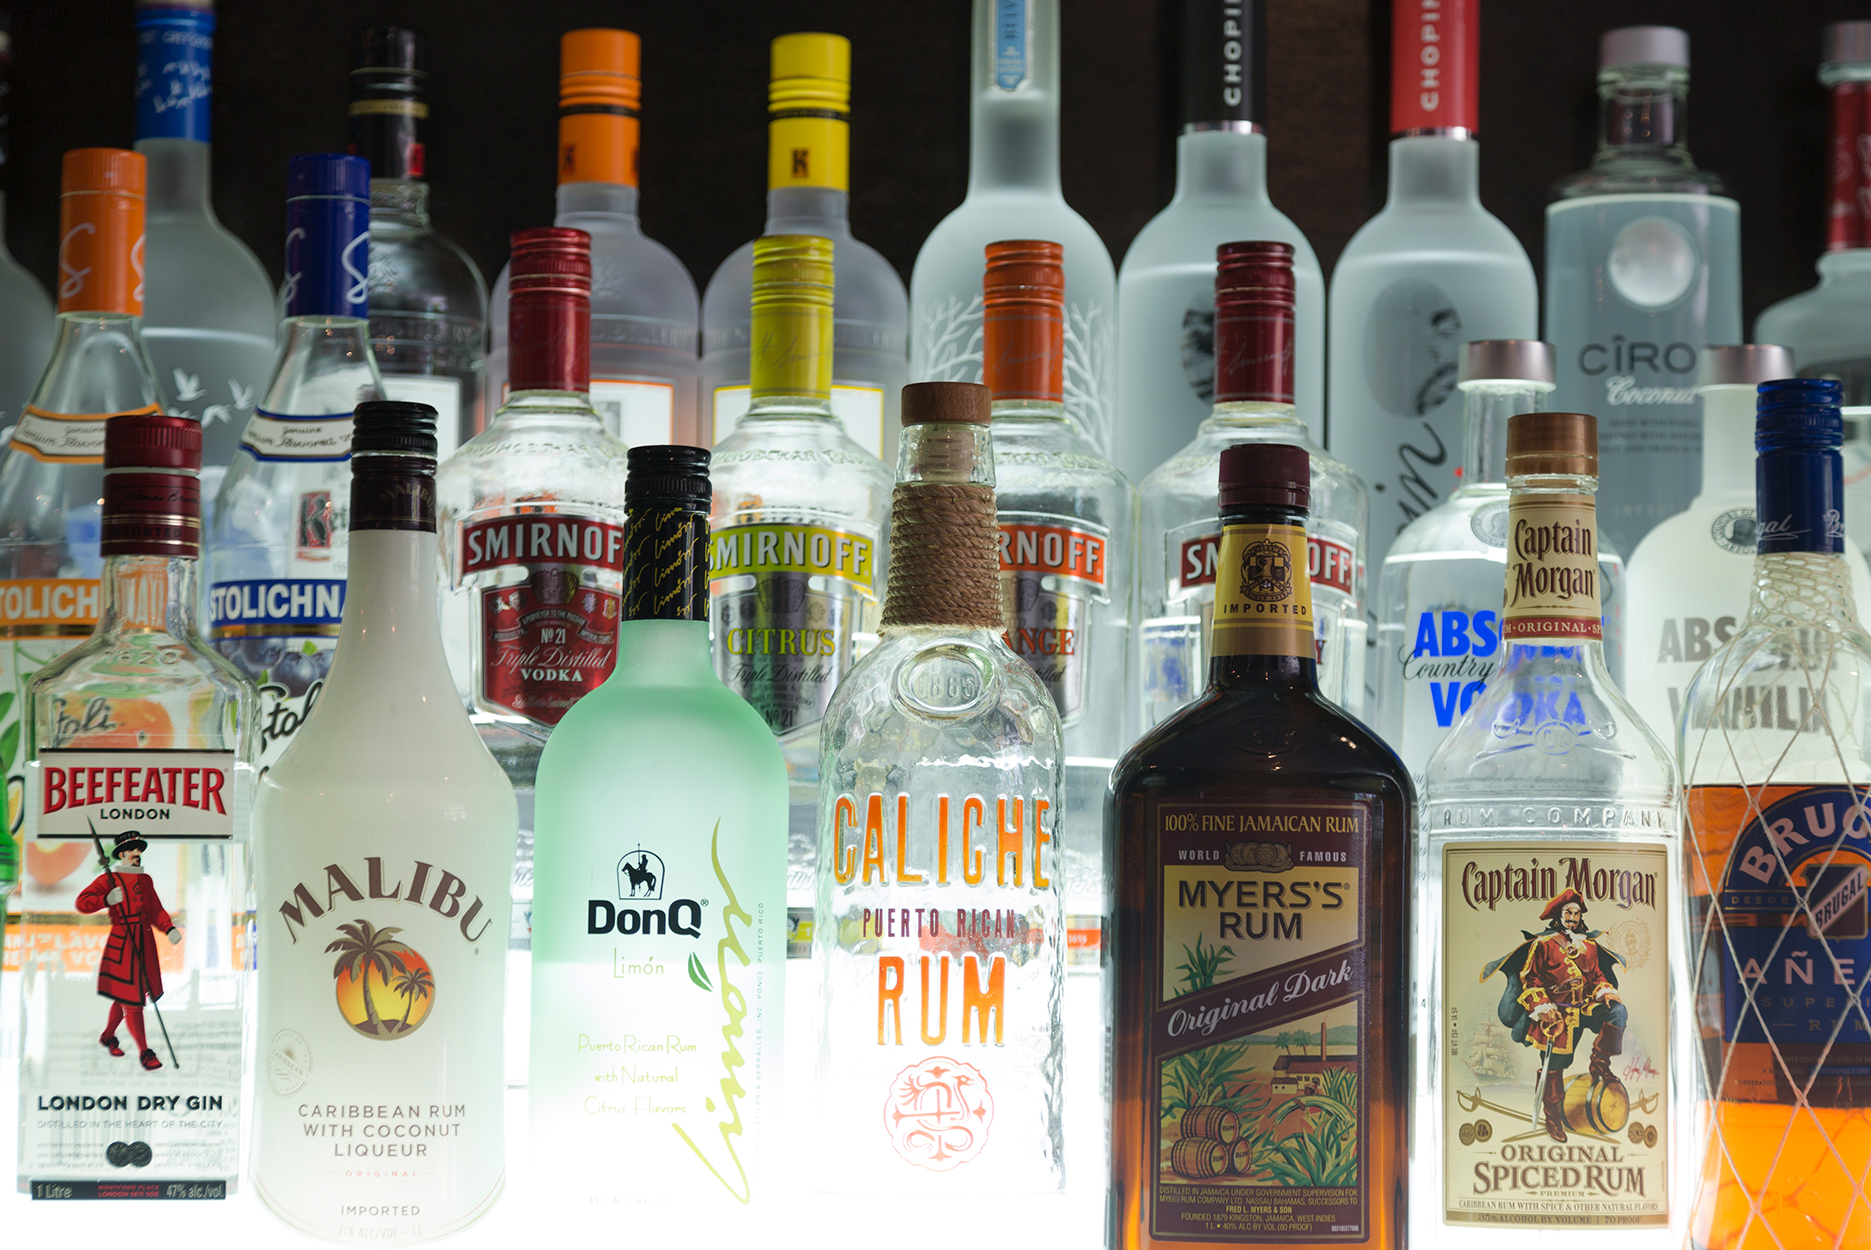 Various bottles of US and international spirits